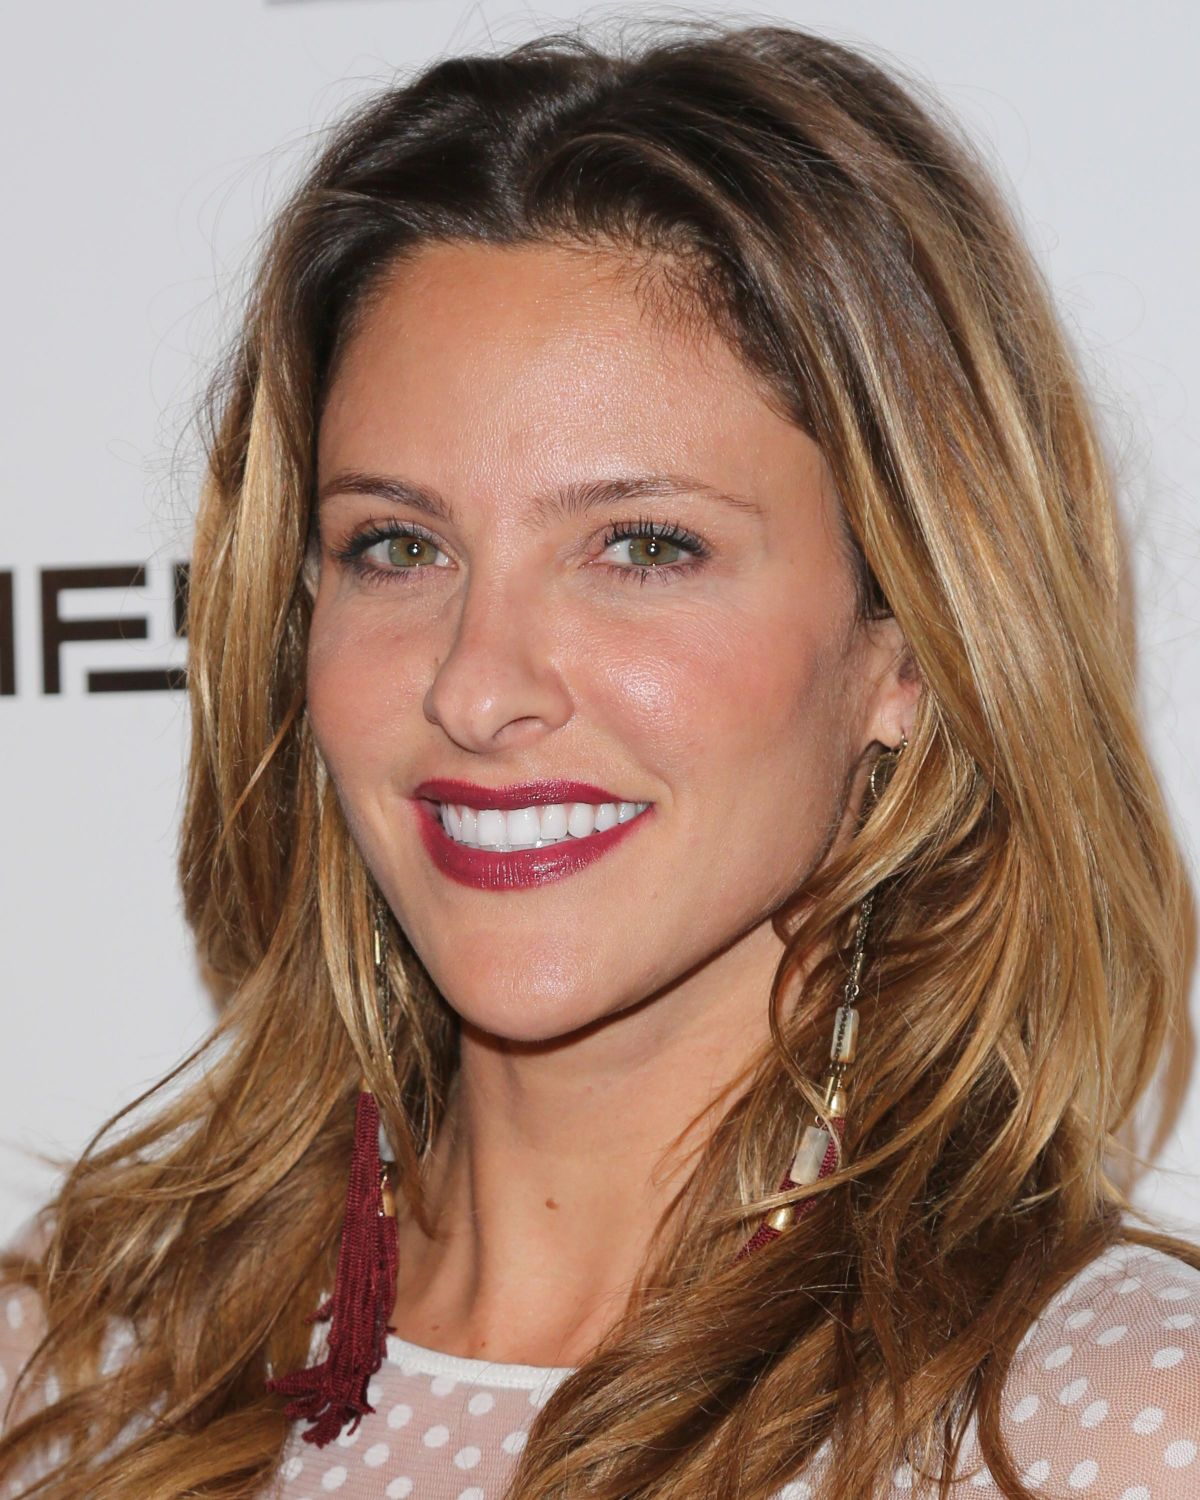 The 39-year old daughter of father (?) and mother(?), 173 cm tall Jill Wagner in 2018 photo